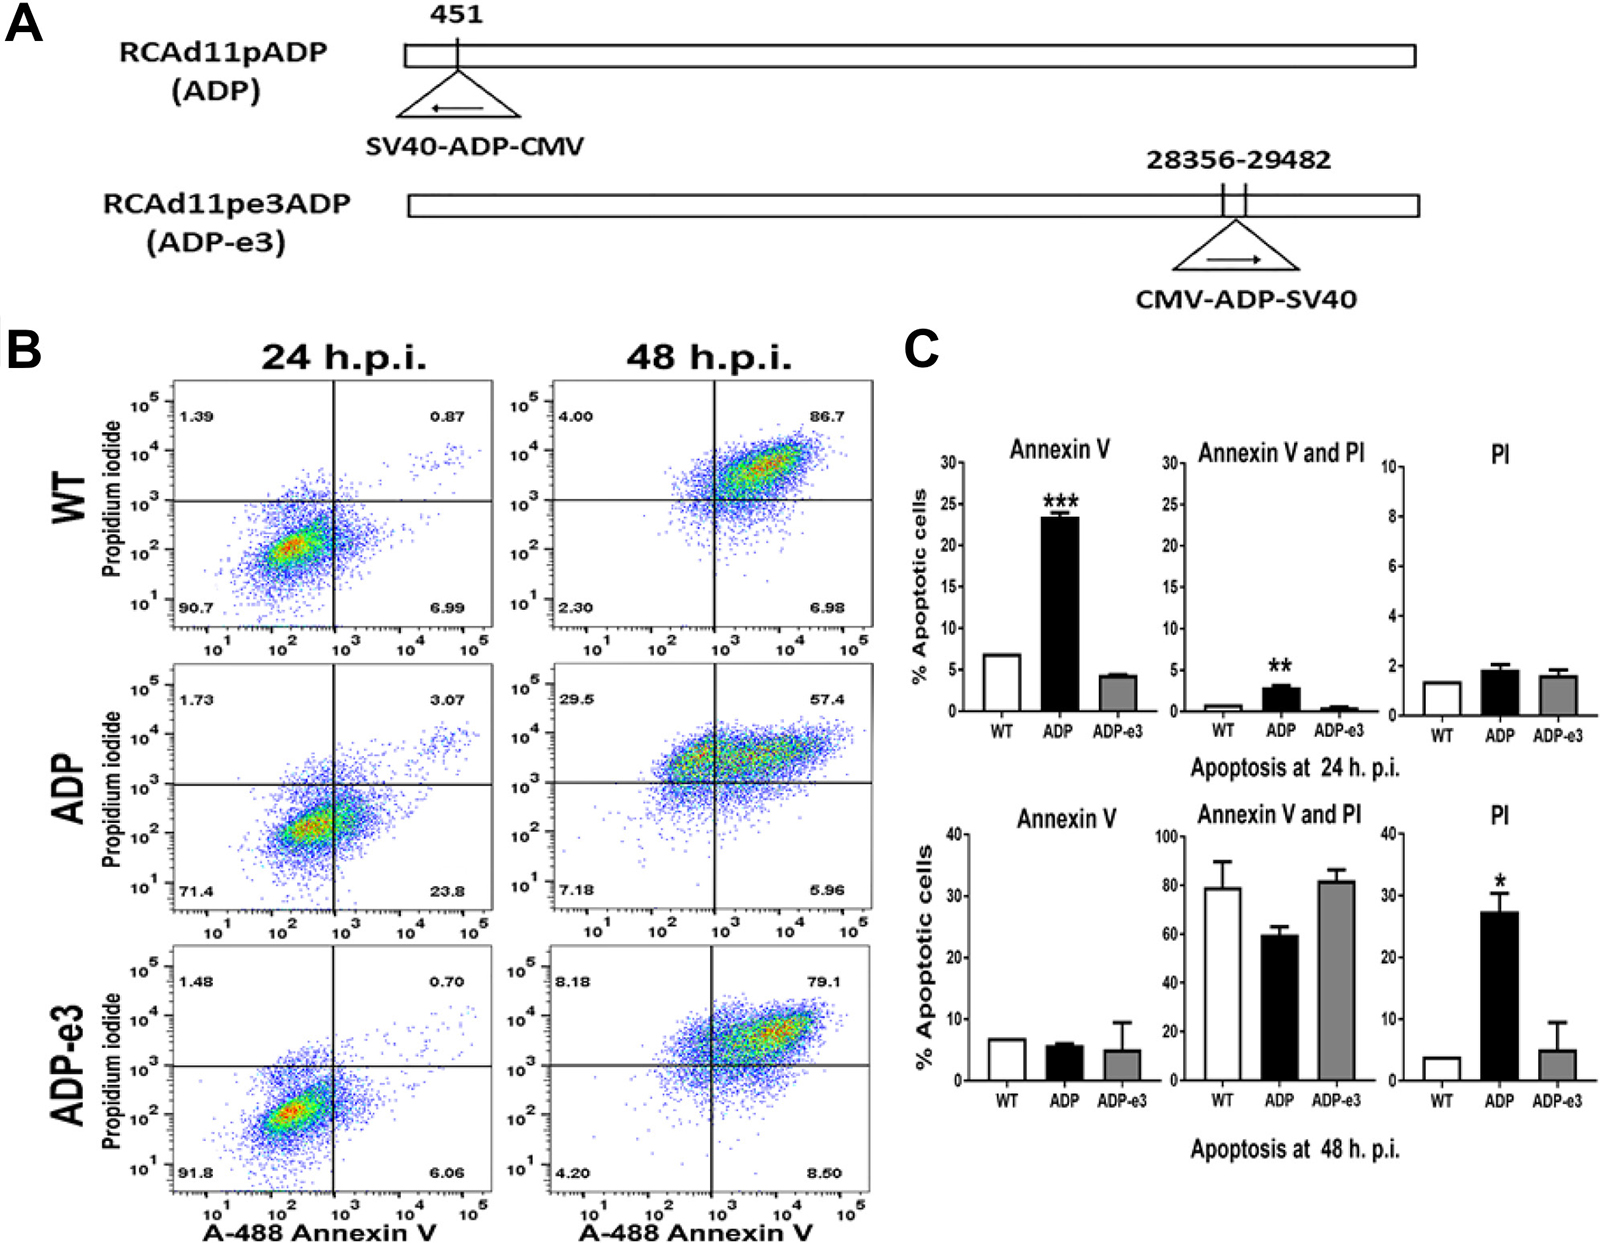 The RCAd11pADP virus induced significant apoptosis compared to that induced by RCAd11pE3ADP and Ad11pwt virus in PC3 cells.